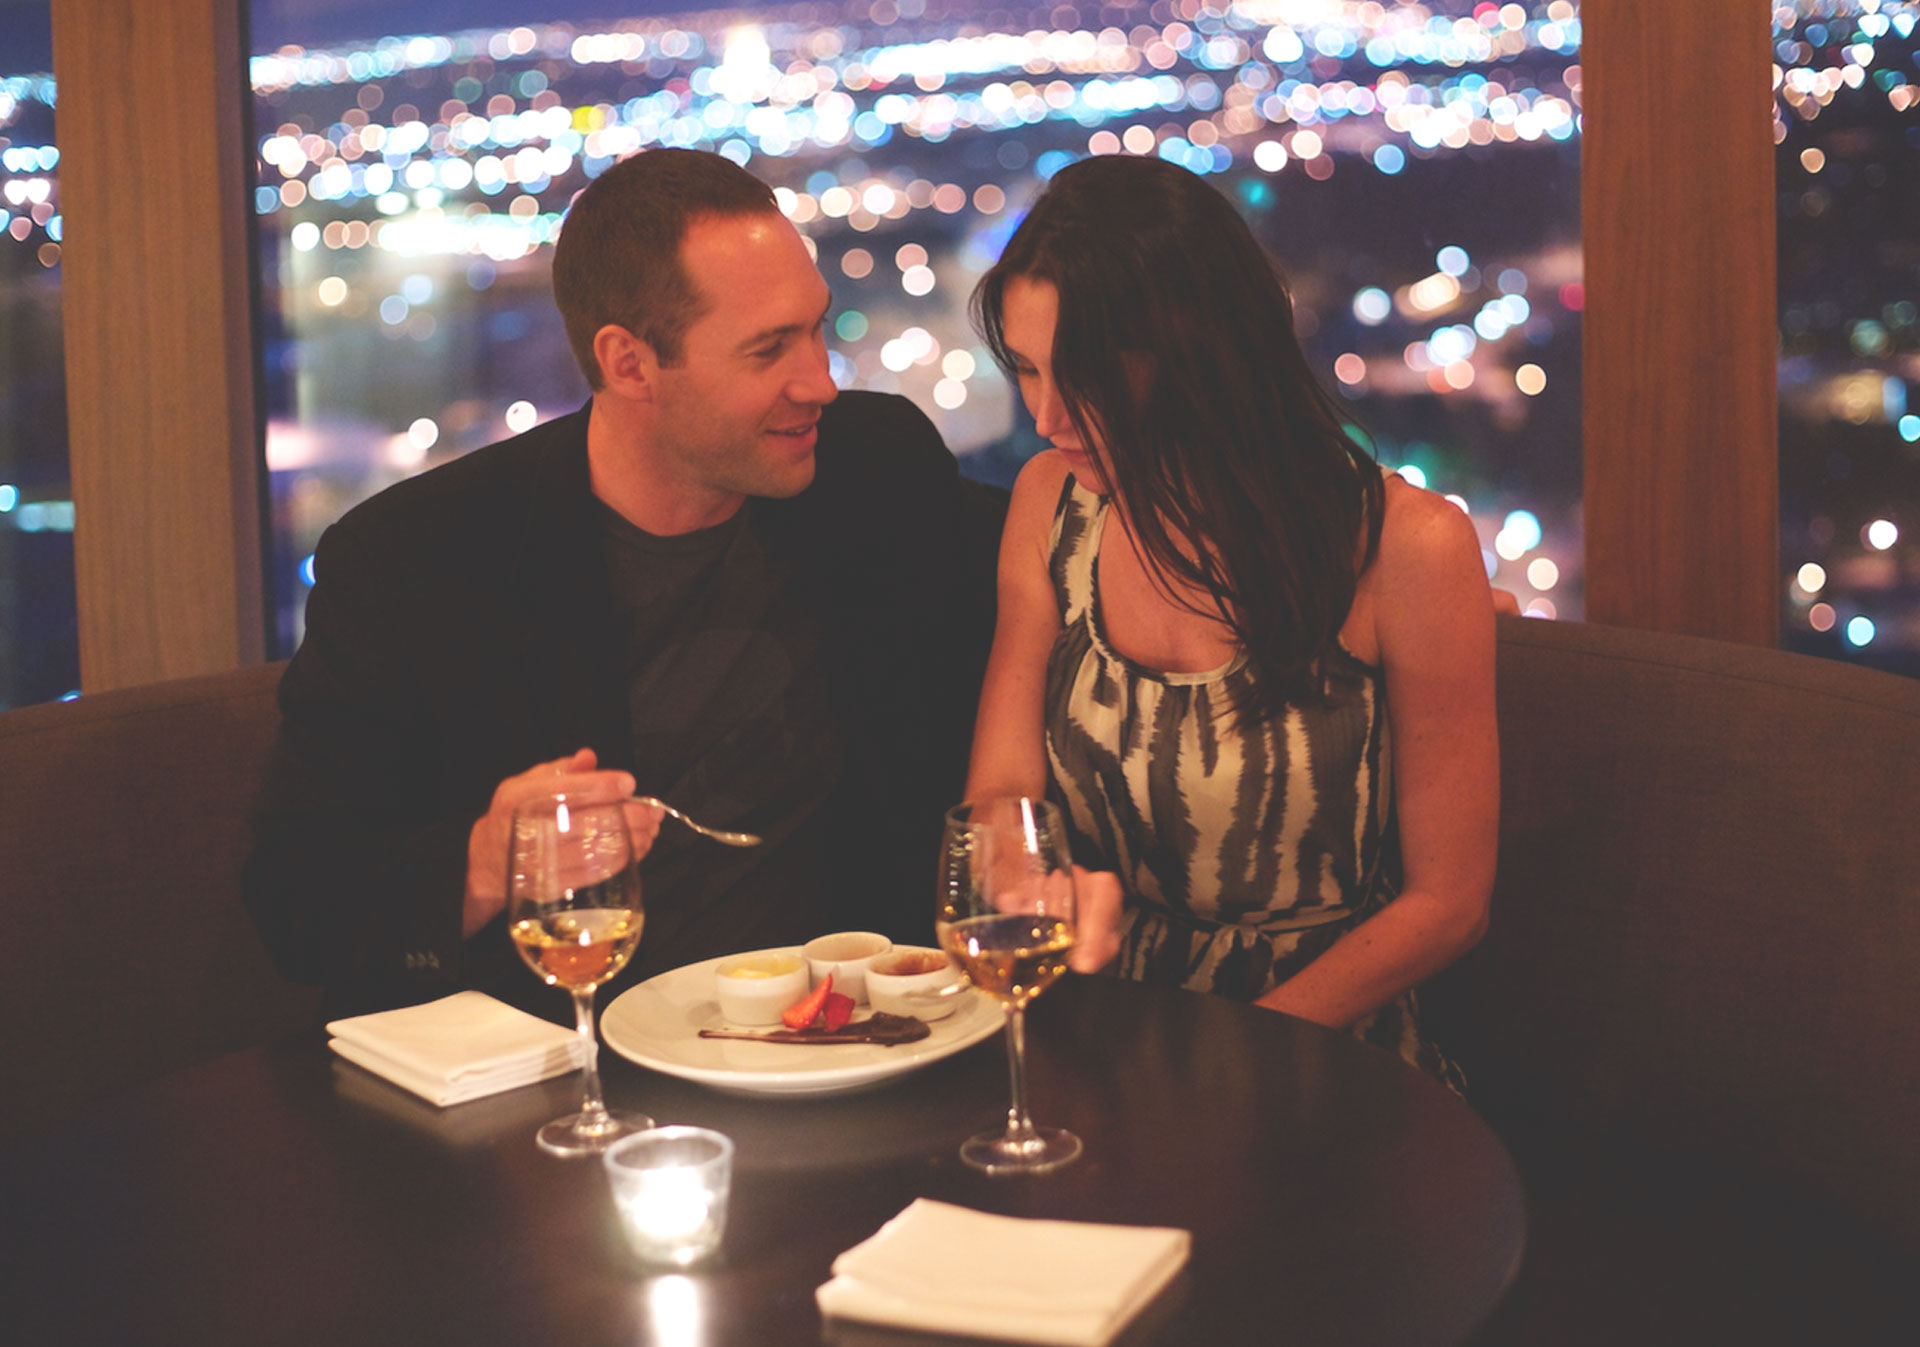 Take Valentine's to new heights with a candle lit dinner at Sky 360.